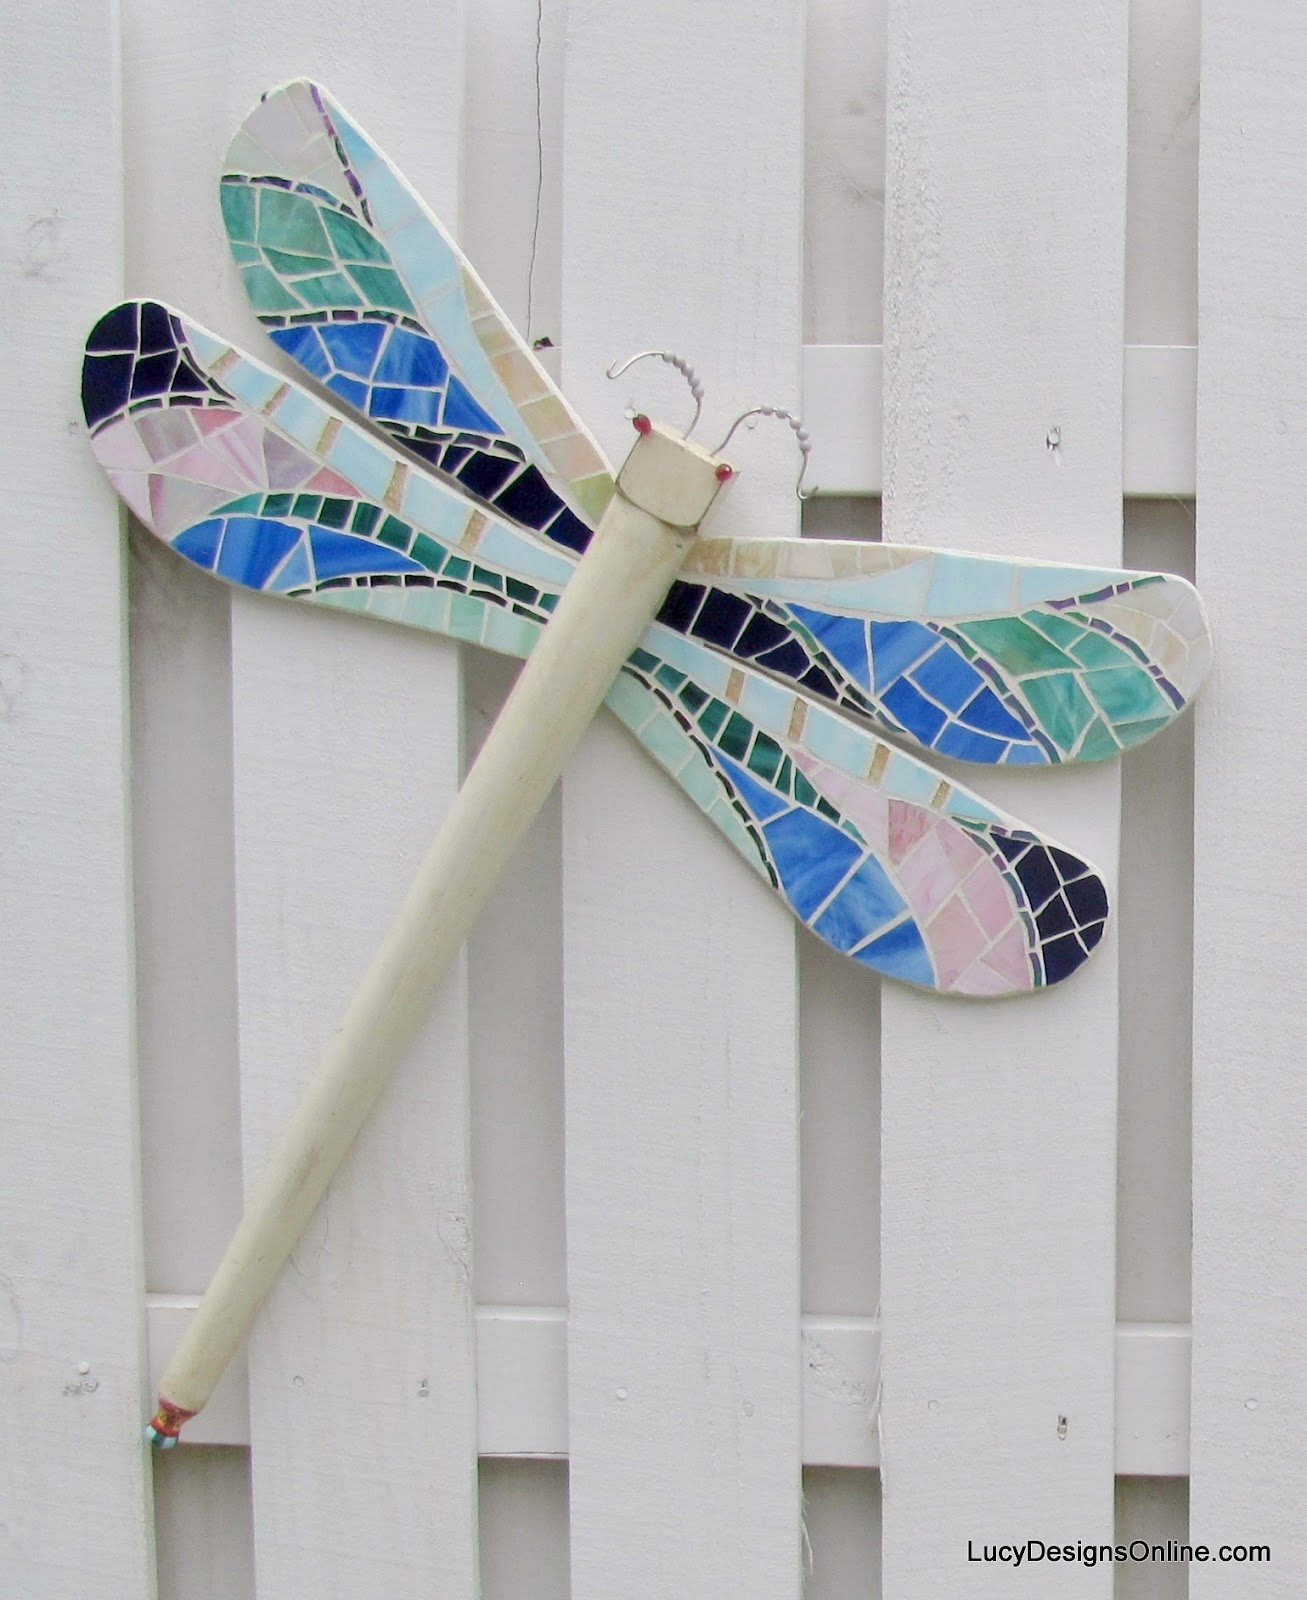 stained glass mosaic table leg dragonfly